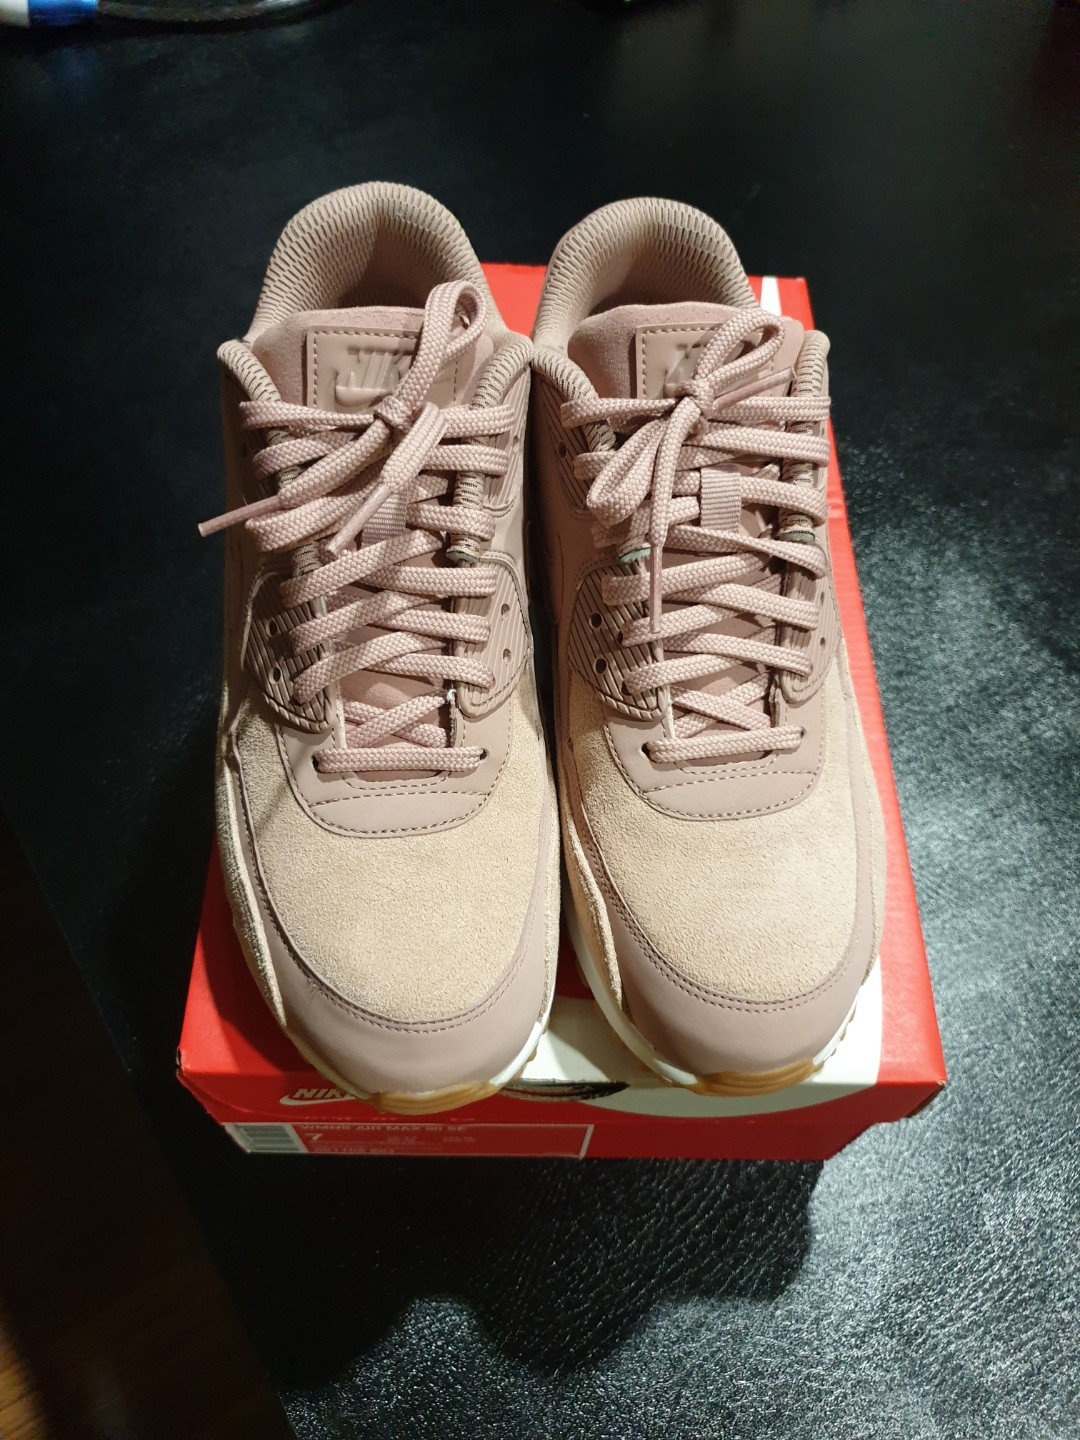 2729a6f87b Nike Air Max 90 SE, Women's Fashion, Shoes, Sneakers on Carousell